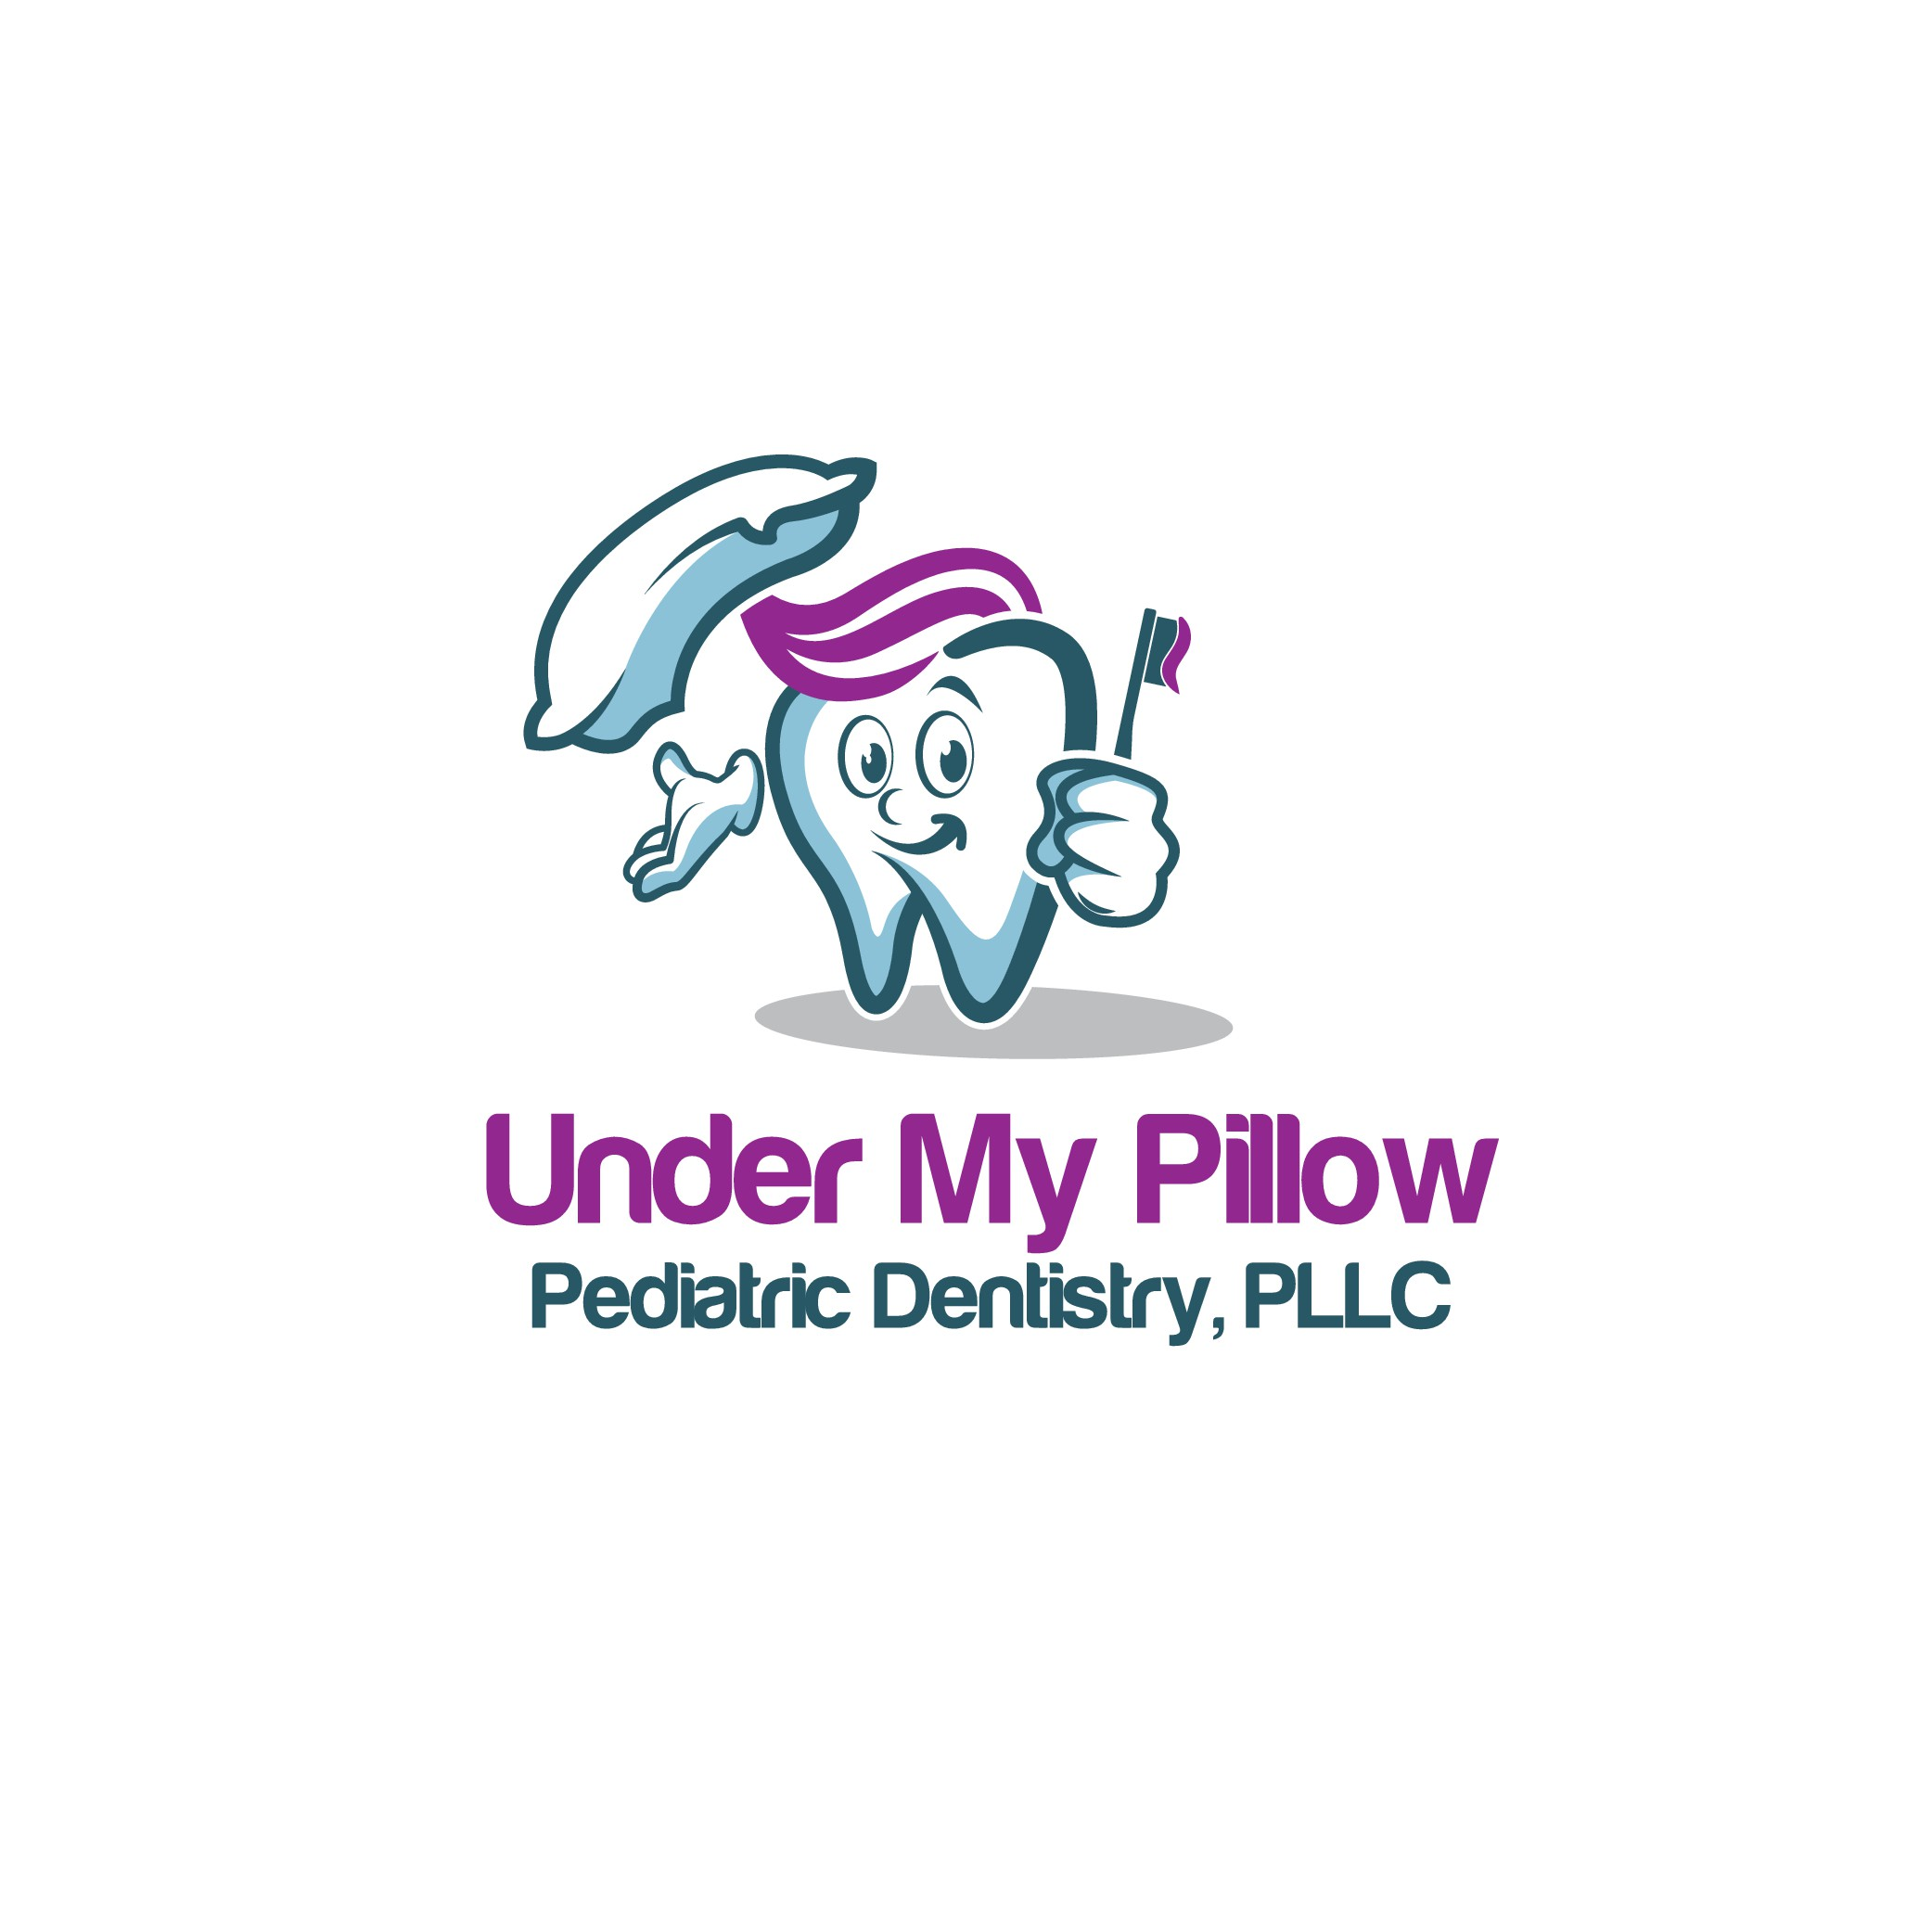 Creating a playful, fun, creative logo for Under My Pillow Pediatric Dentistry